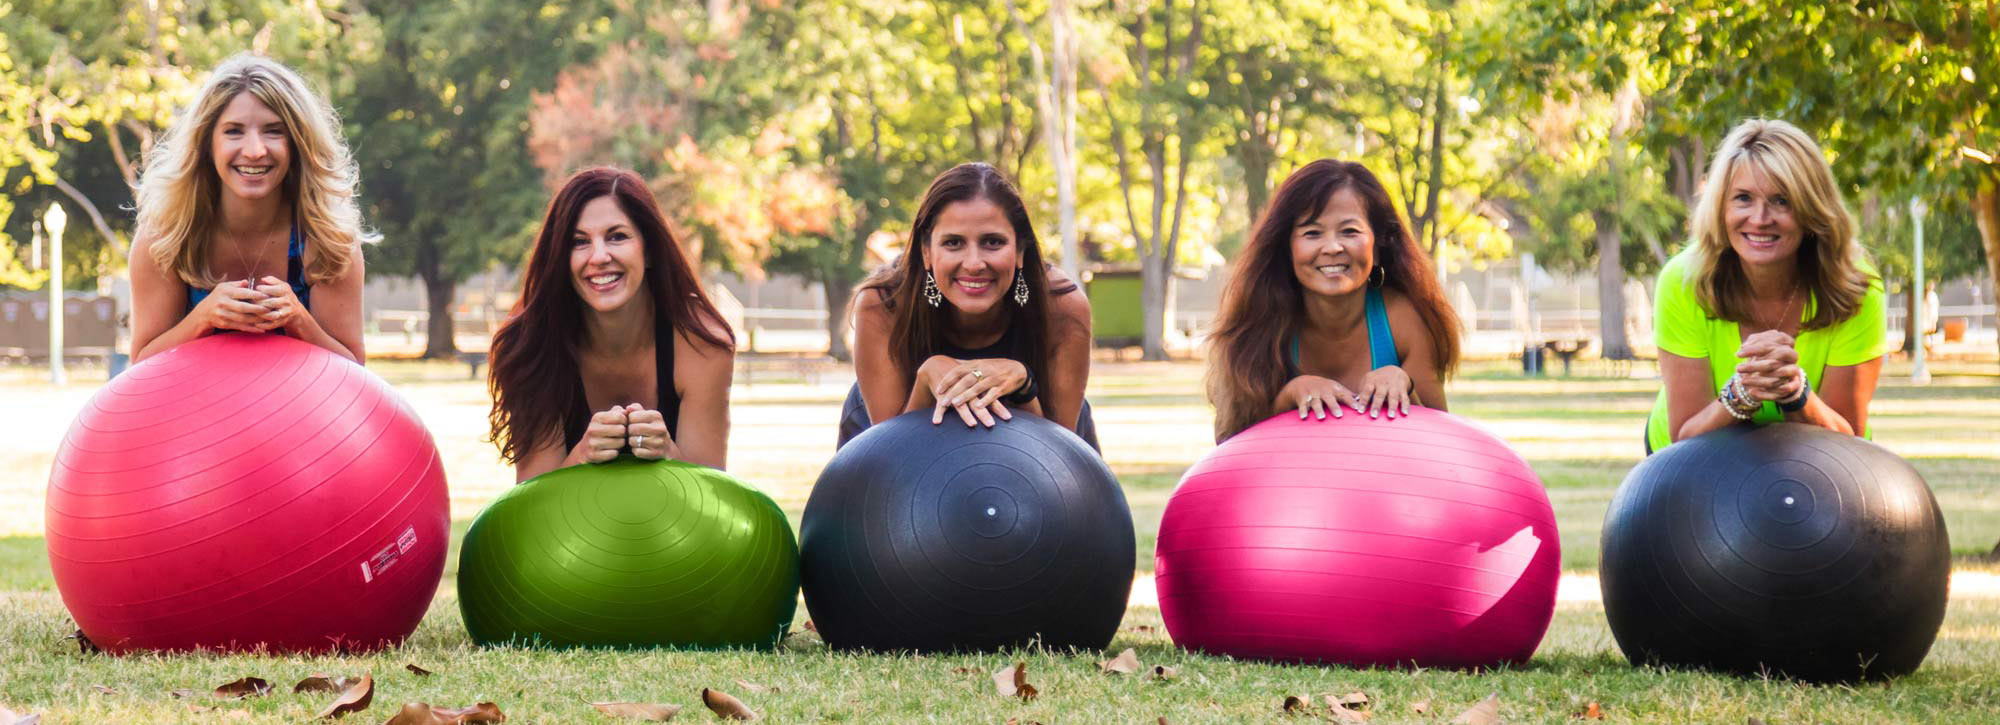 womens fitness outdoor bootcamp weight loss program nutrition clean eating group workout